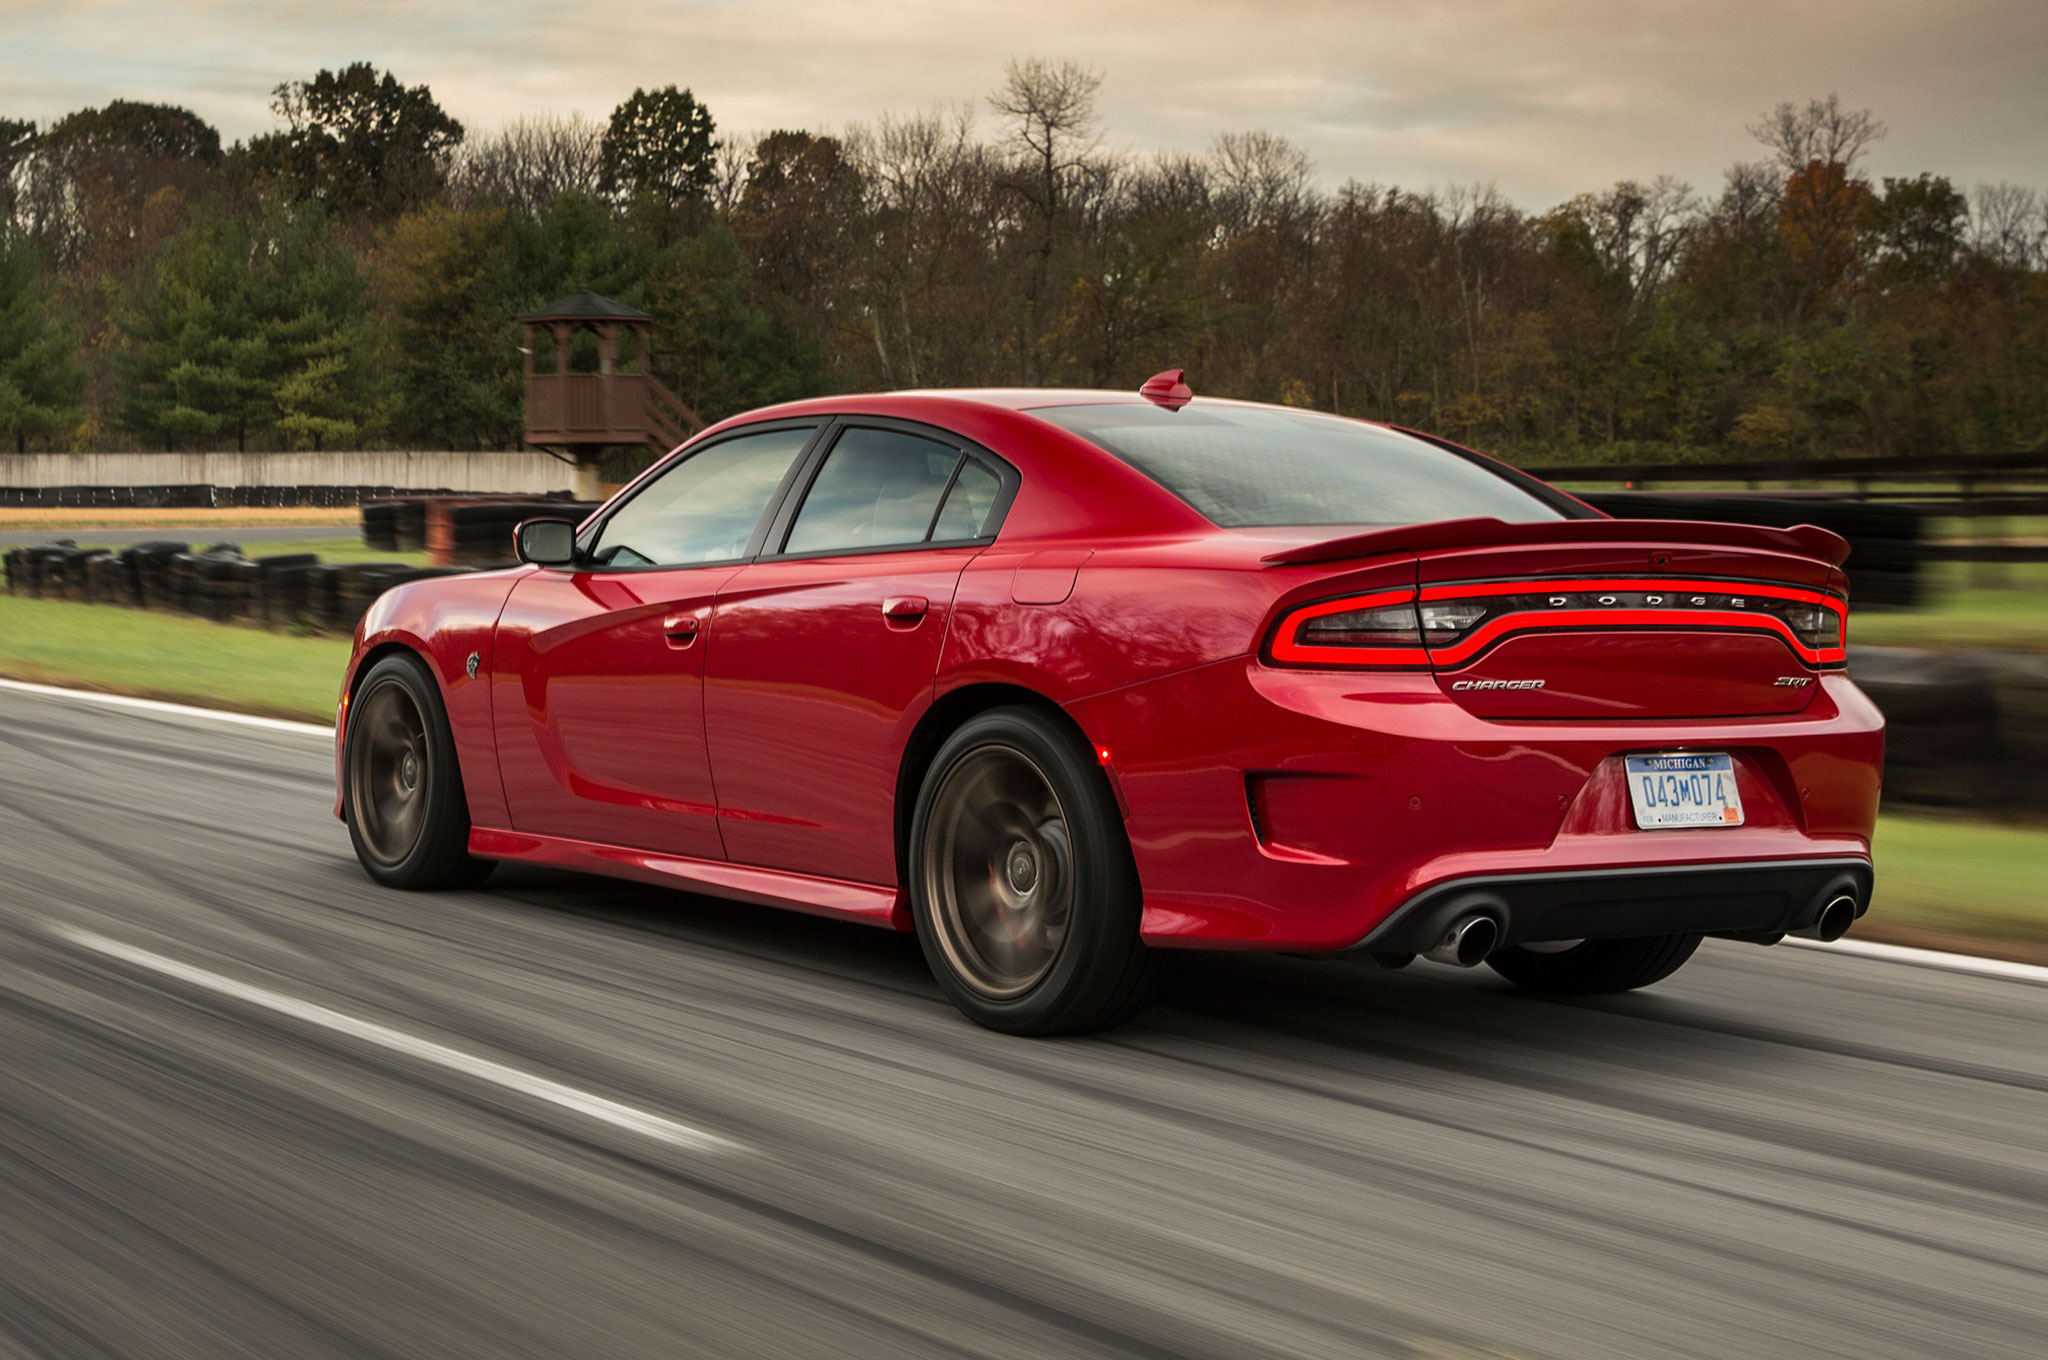 2016 Dodge Challenger Charger Hellcat Prices Increase